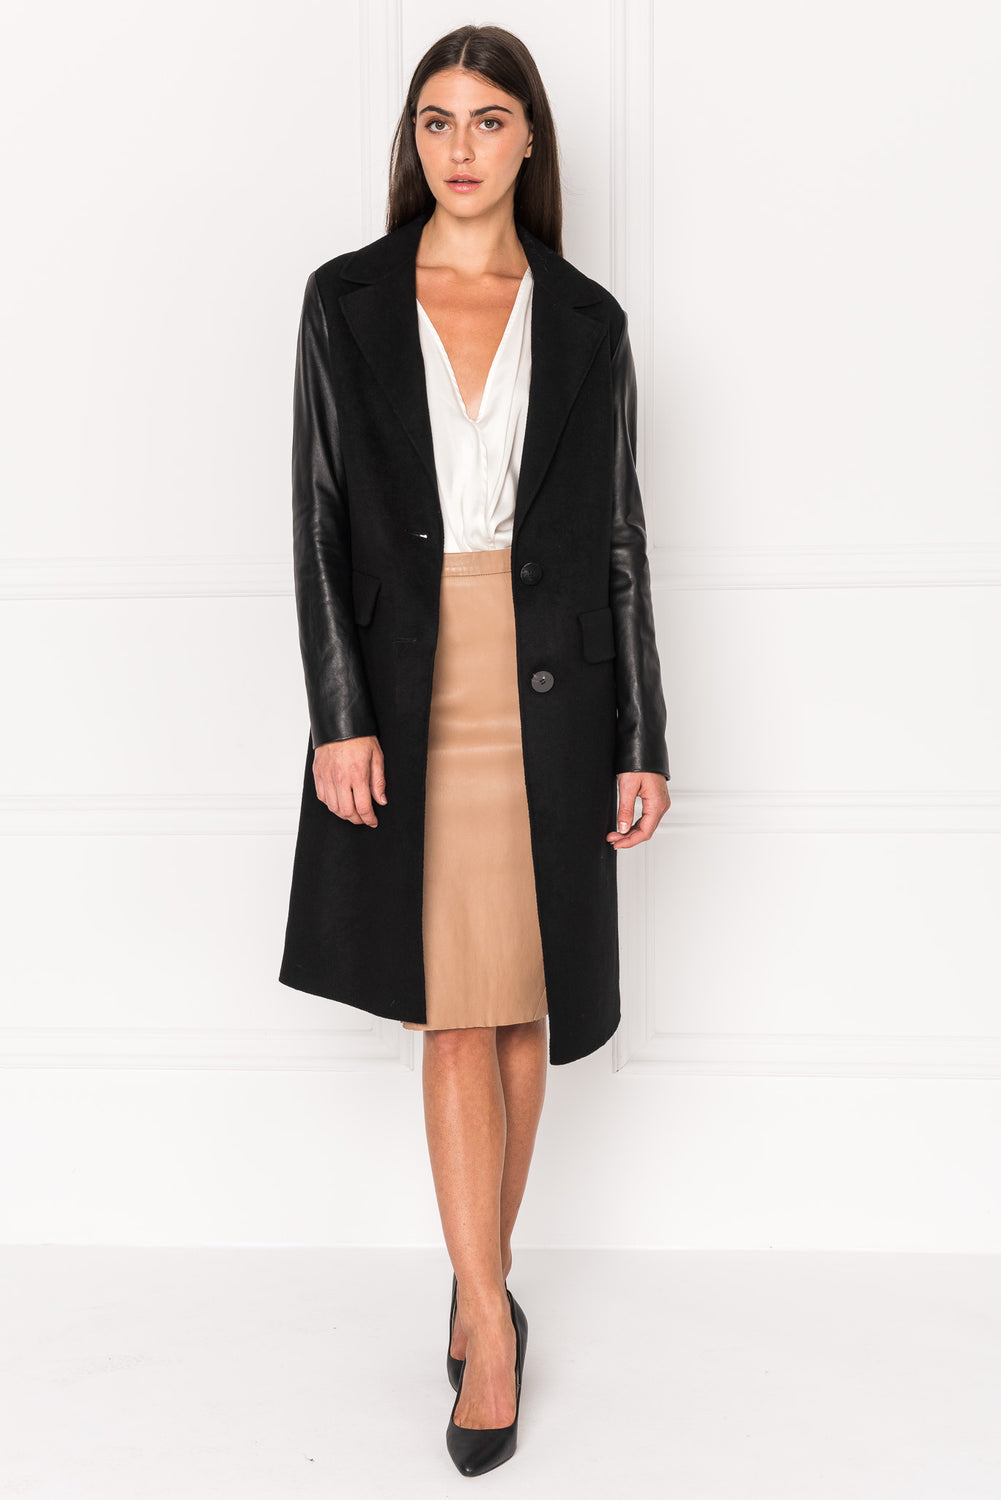 MAERA Black Wool Coat With Leather Sleeves